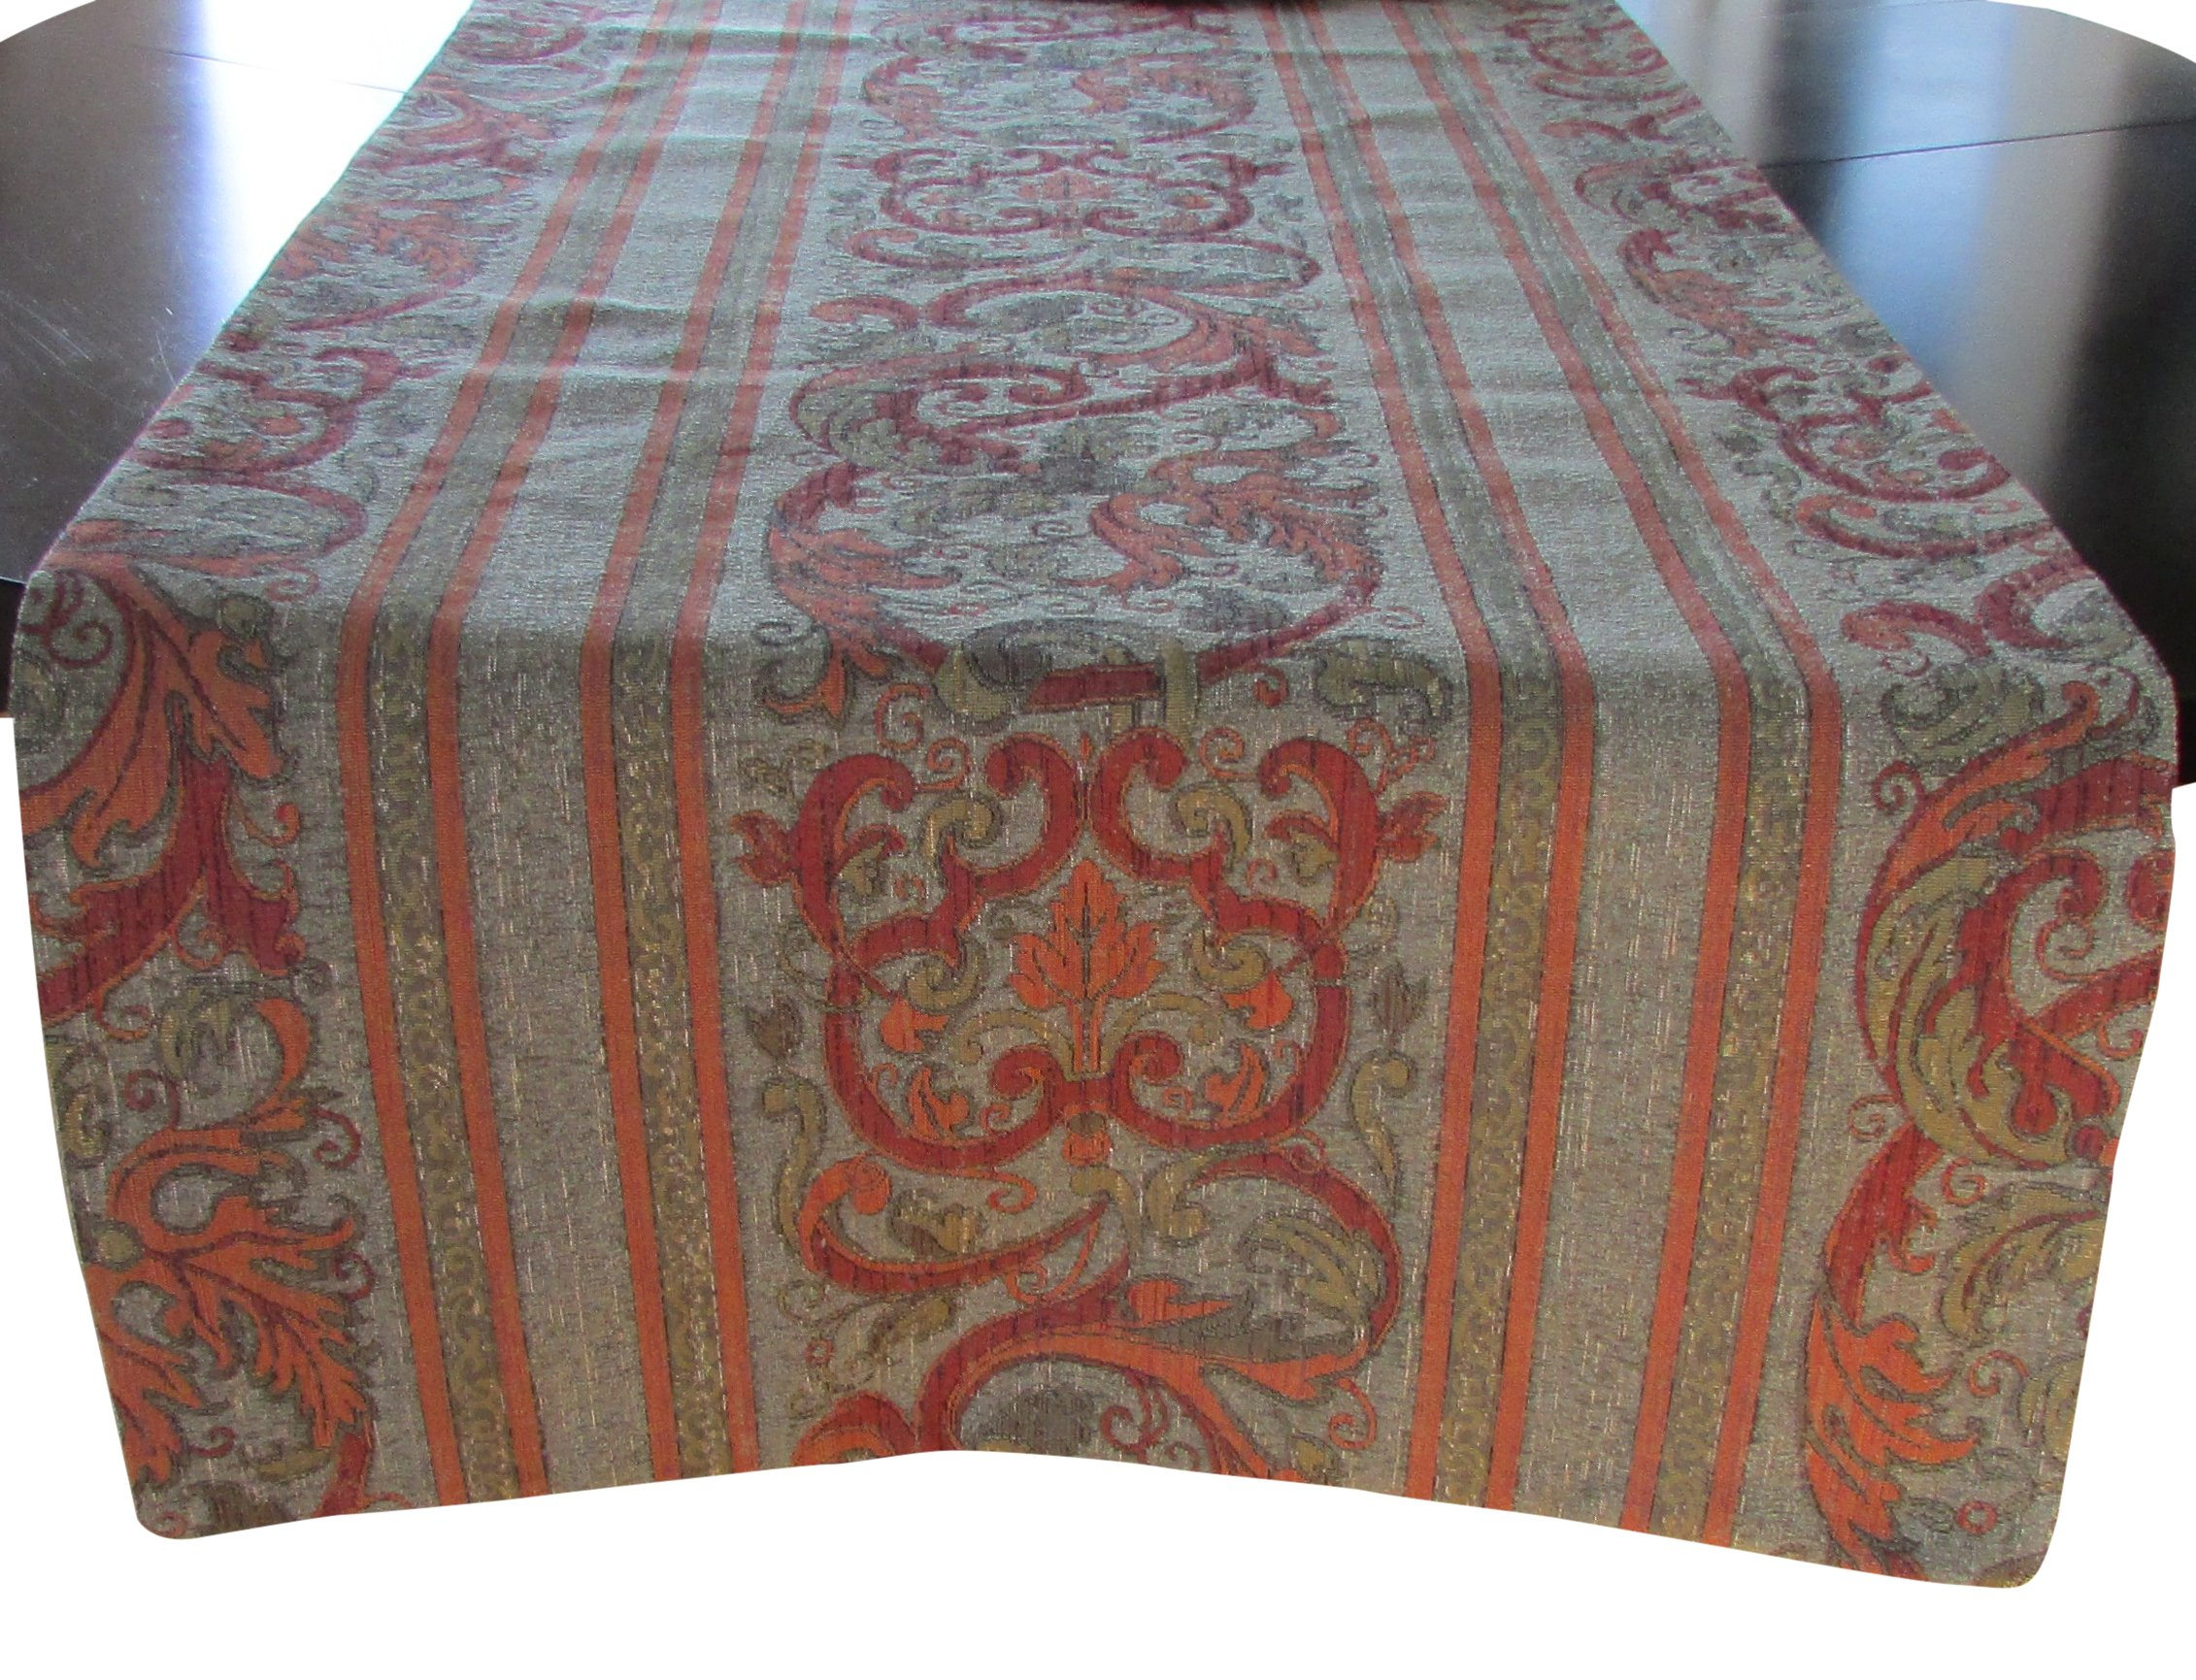 Corona Decor Extra-Wide Italian Woven Table Runner, 95 by 26-Inch, Olive/Red